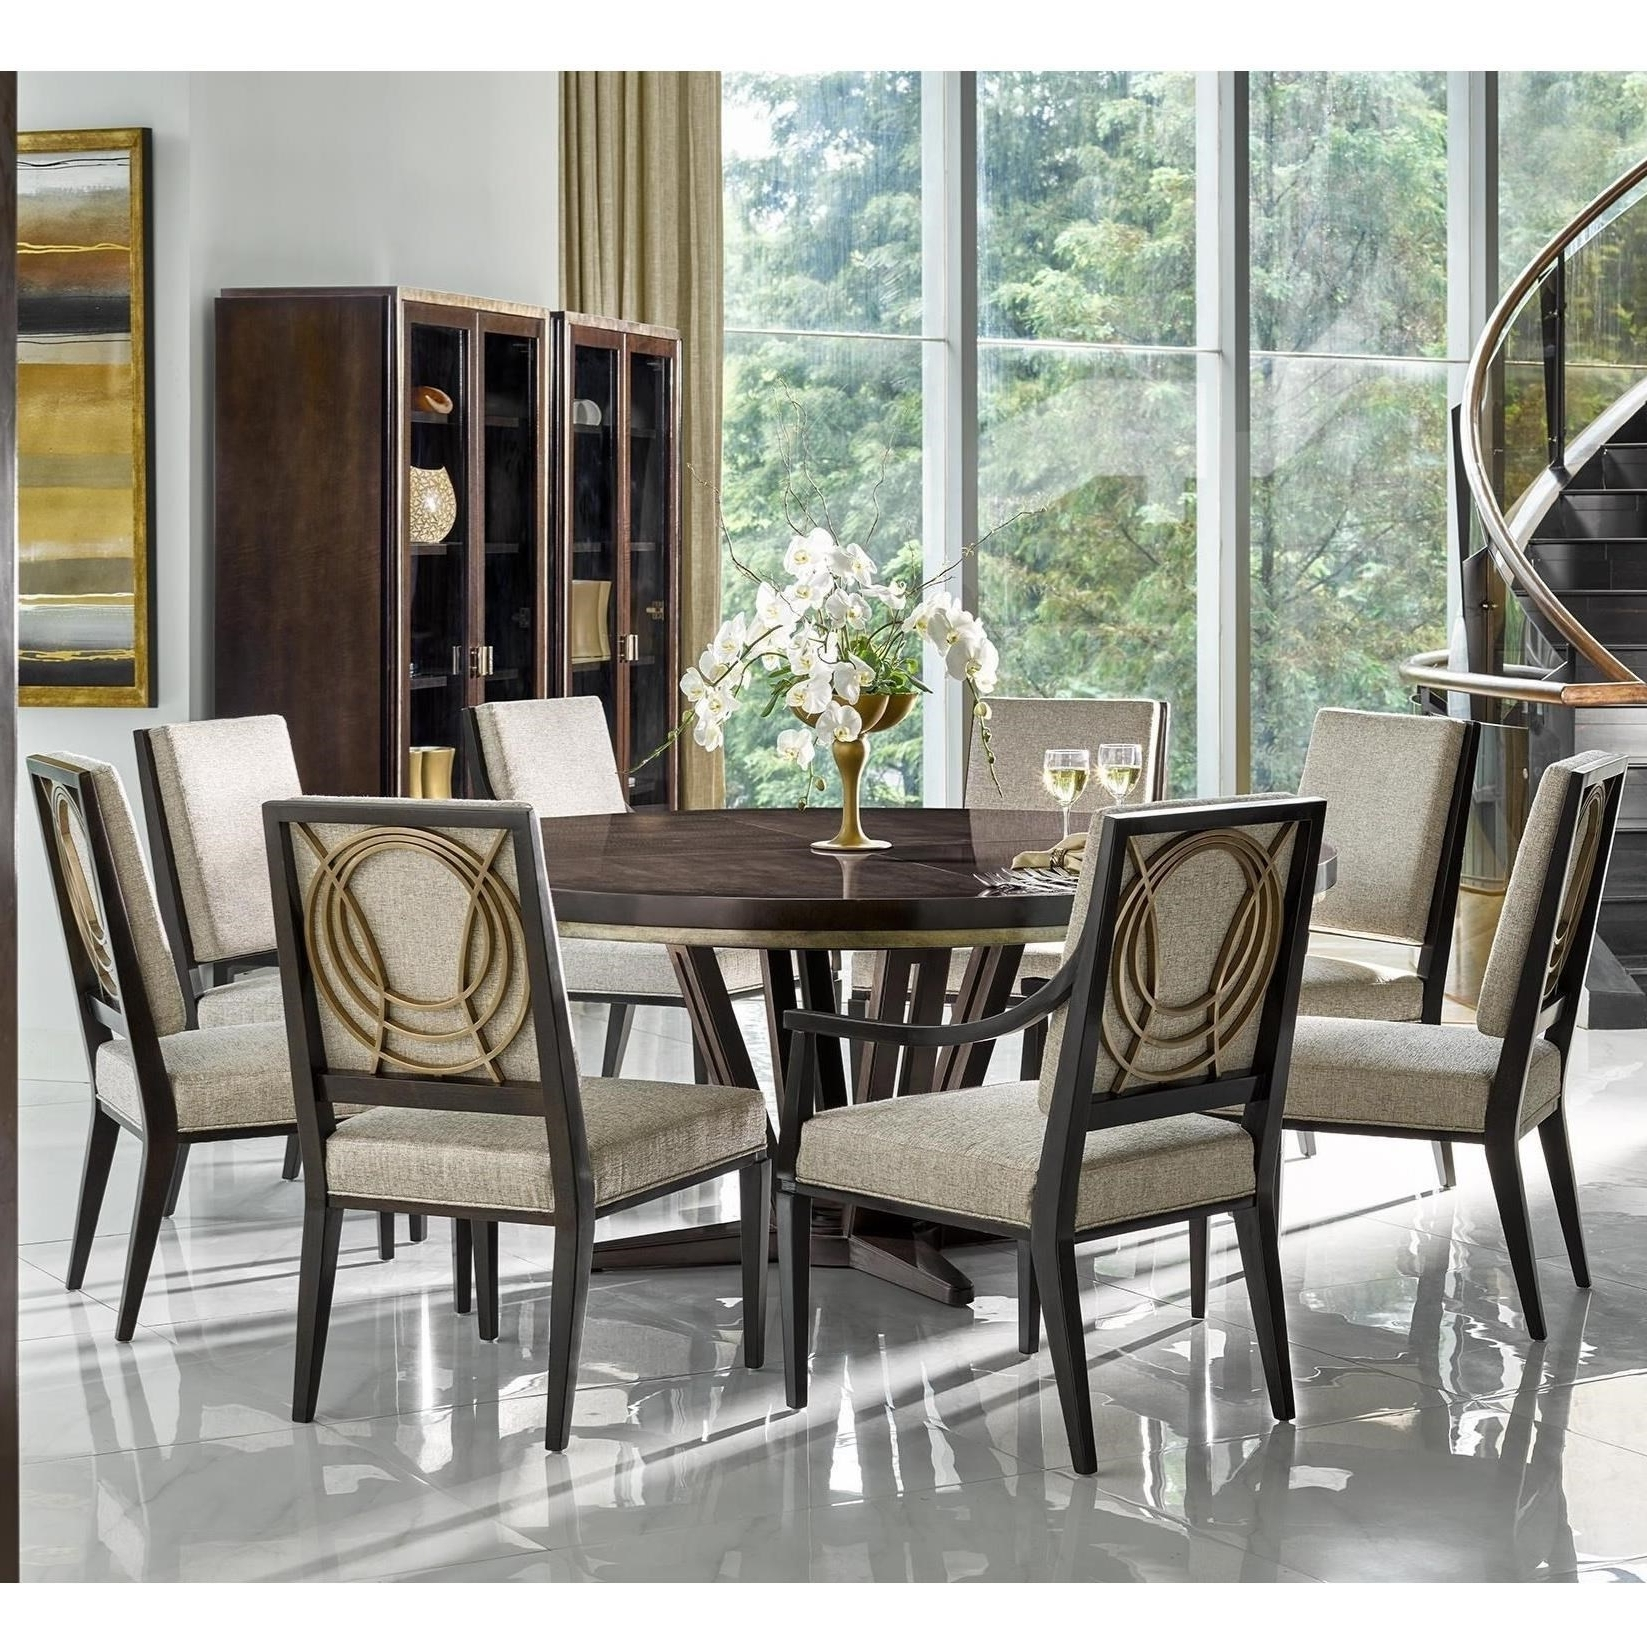 Chapleau Ii 9 Piece Extension Dining Tables With Side Chairs With Recent Cheery Caira Piece Extension Set Back Chairs Caira Piece Extension (Gallery 7 of 25)